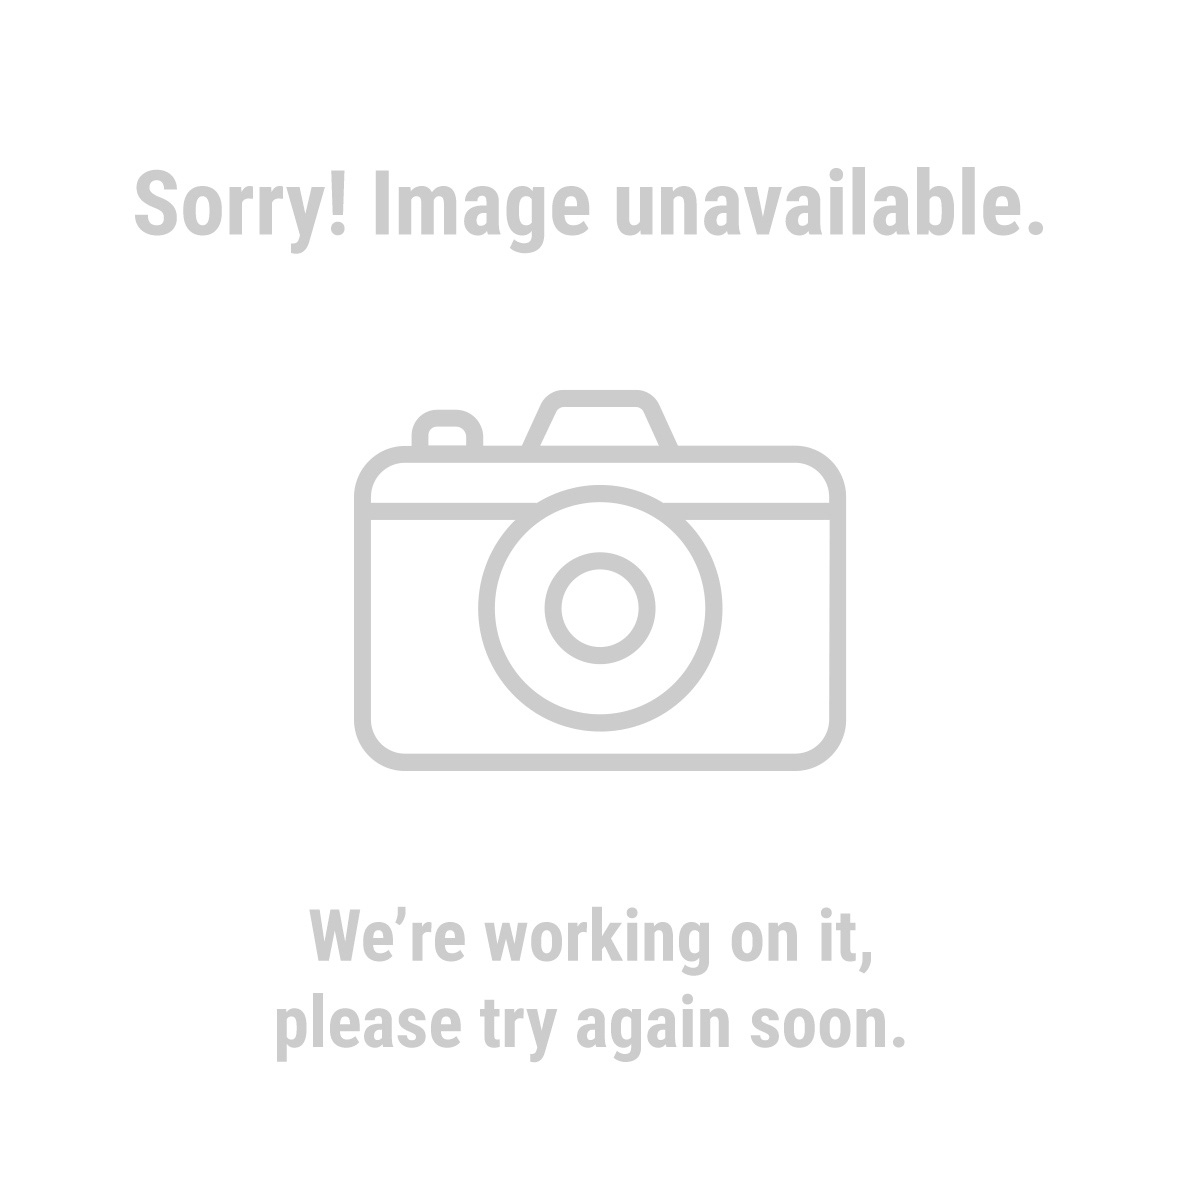 Haul-Master® 97966 5 Piece Amber Teardrop Cab Light Kit